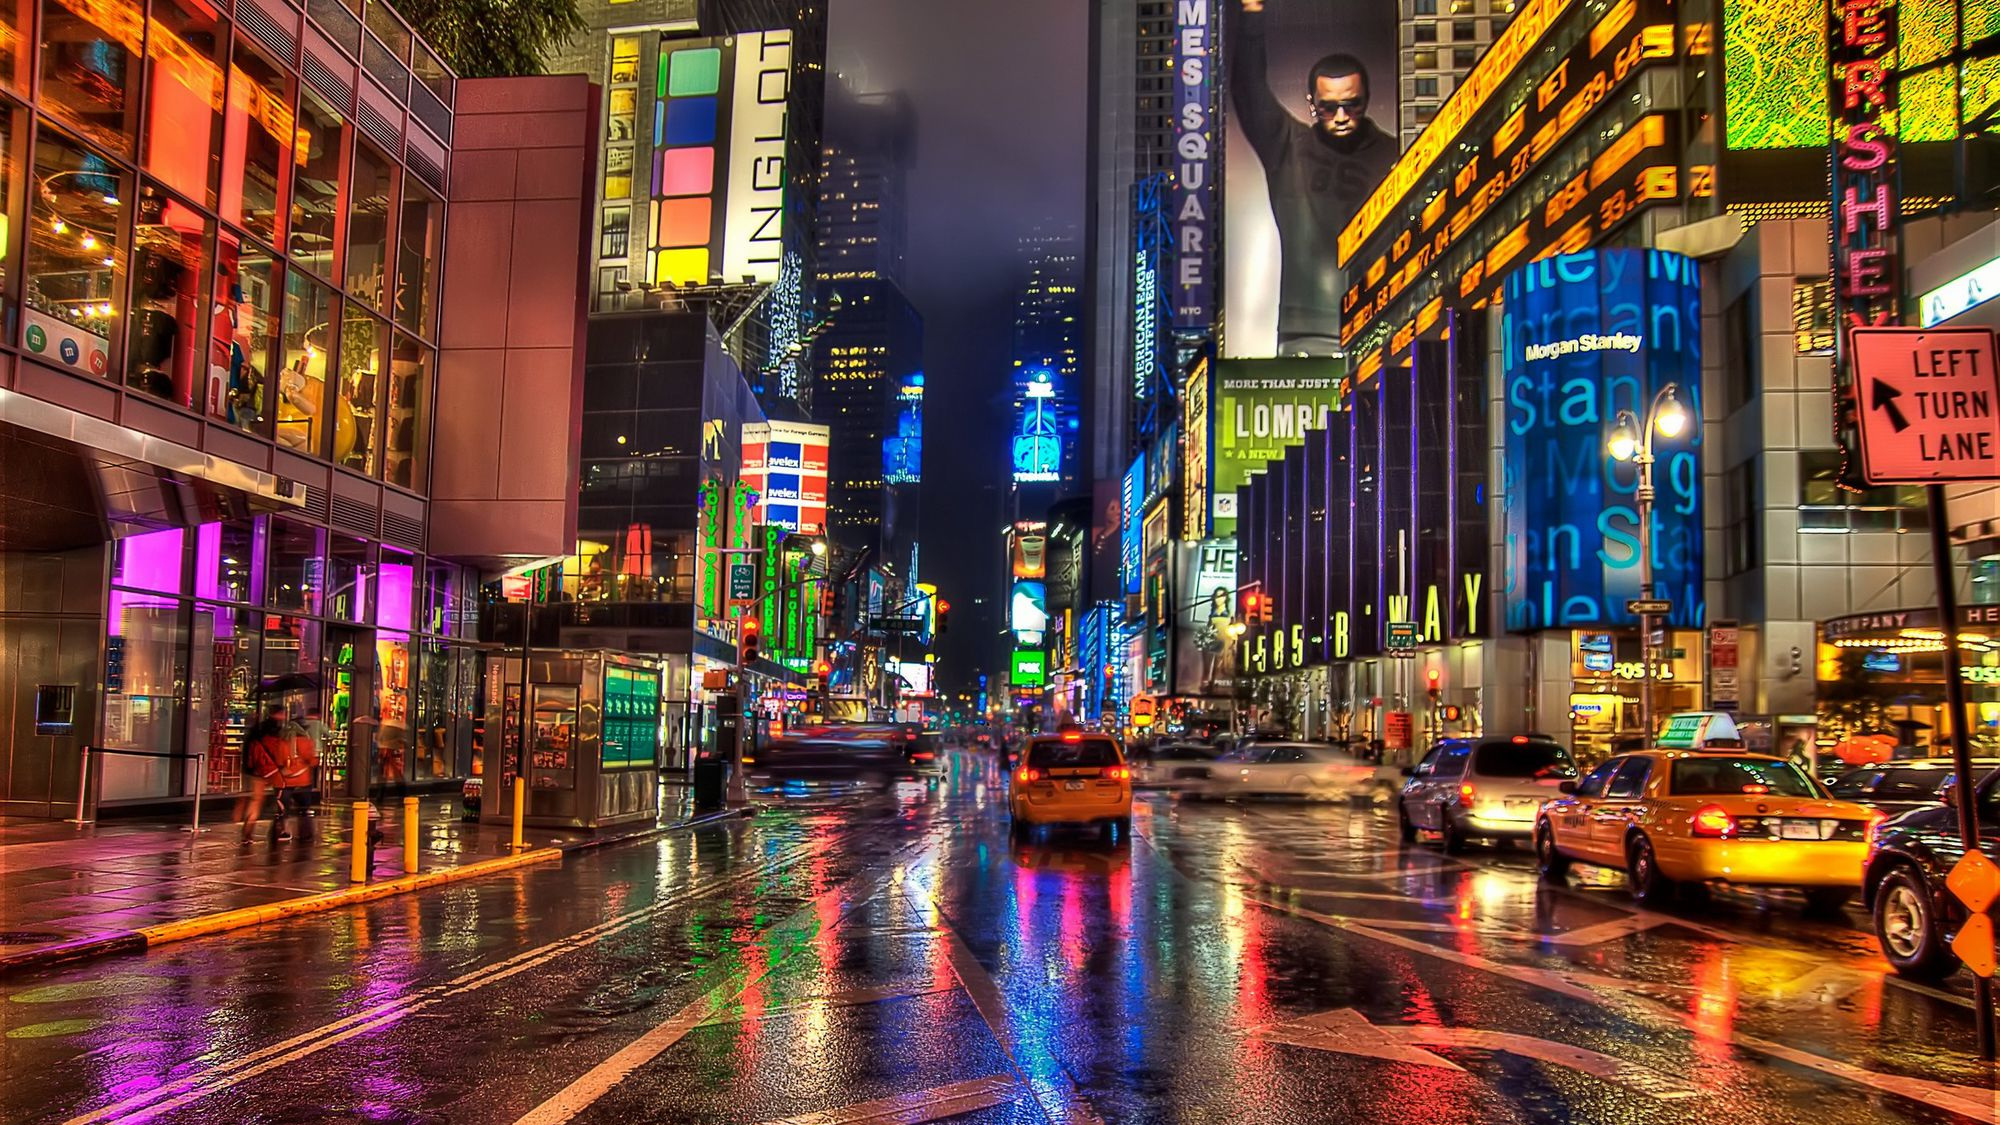 New-york-city-times-square-at-night.jpg